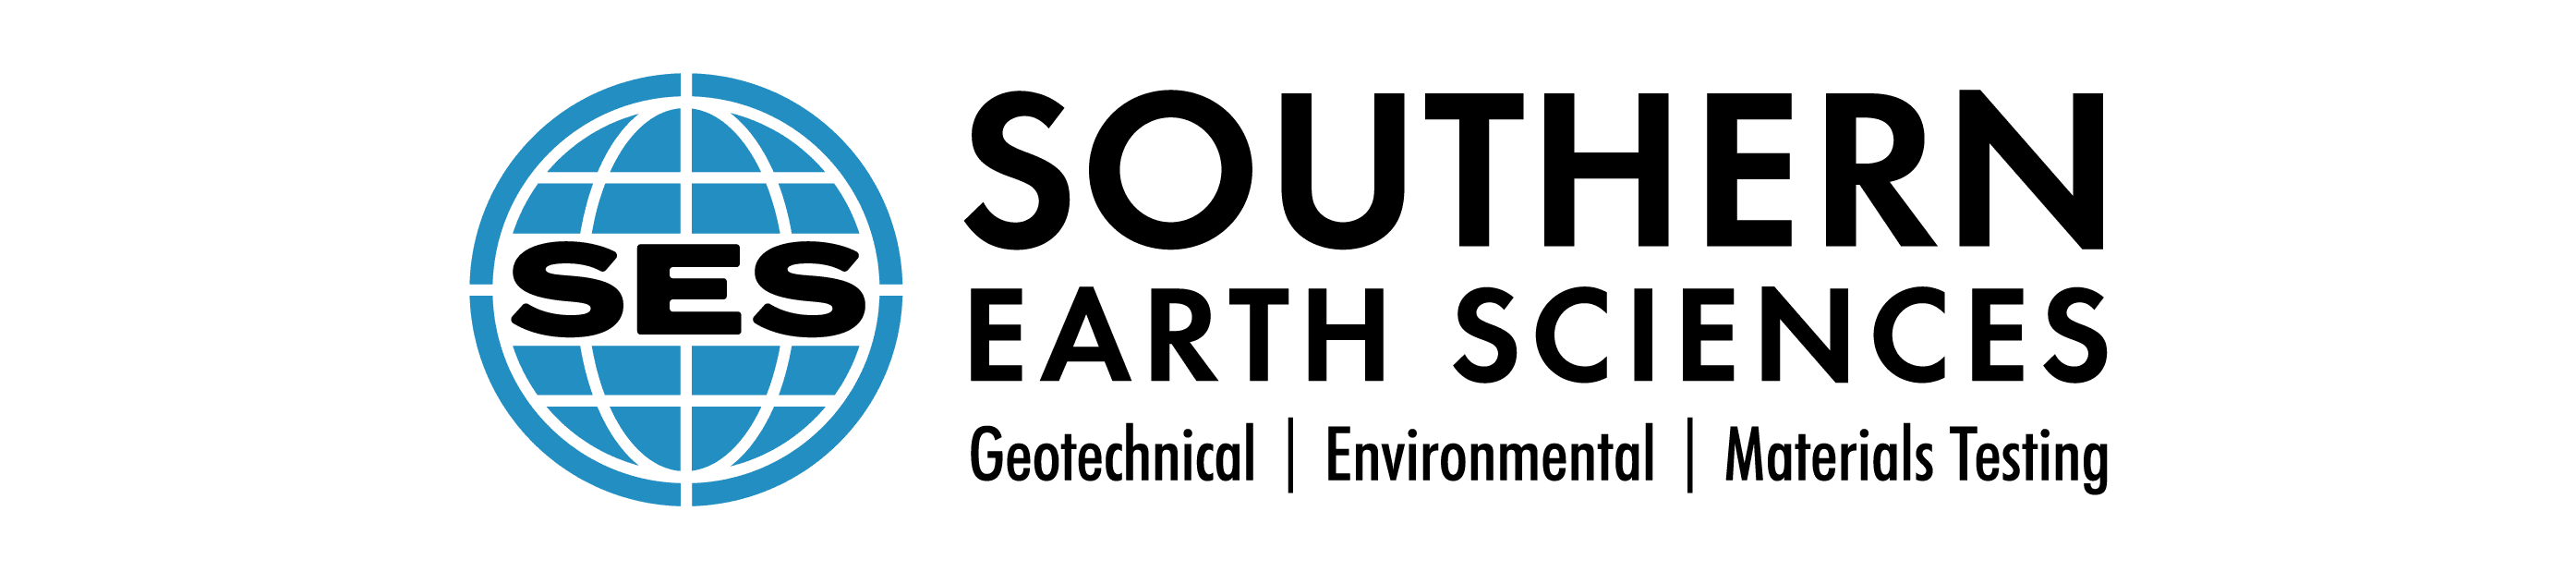 Southern Earth Sciences, Inc.